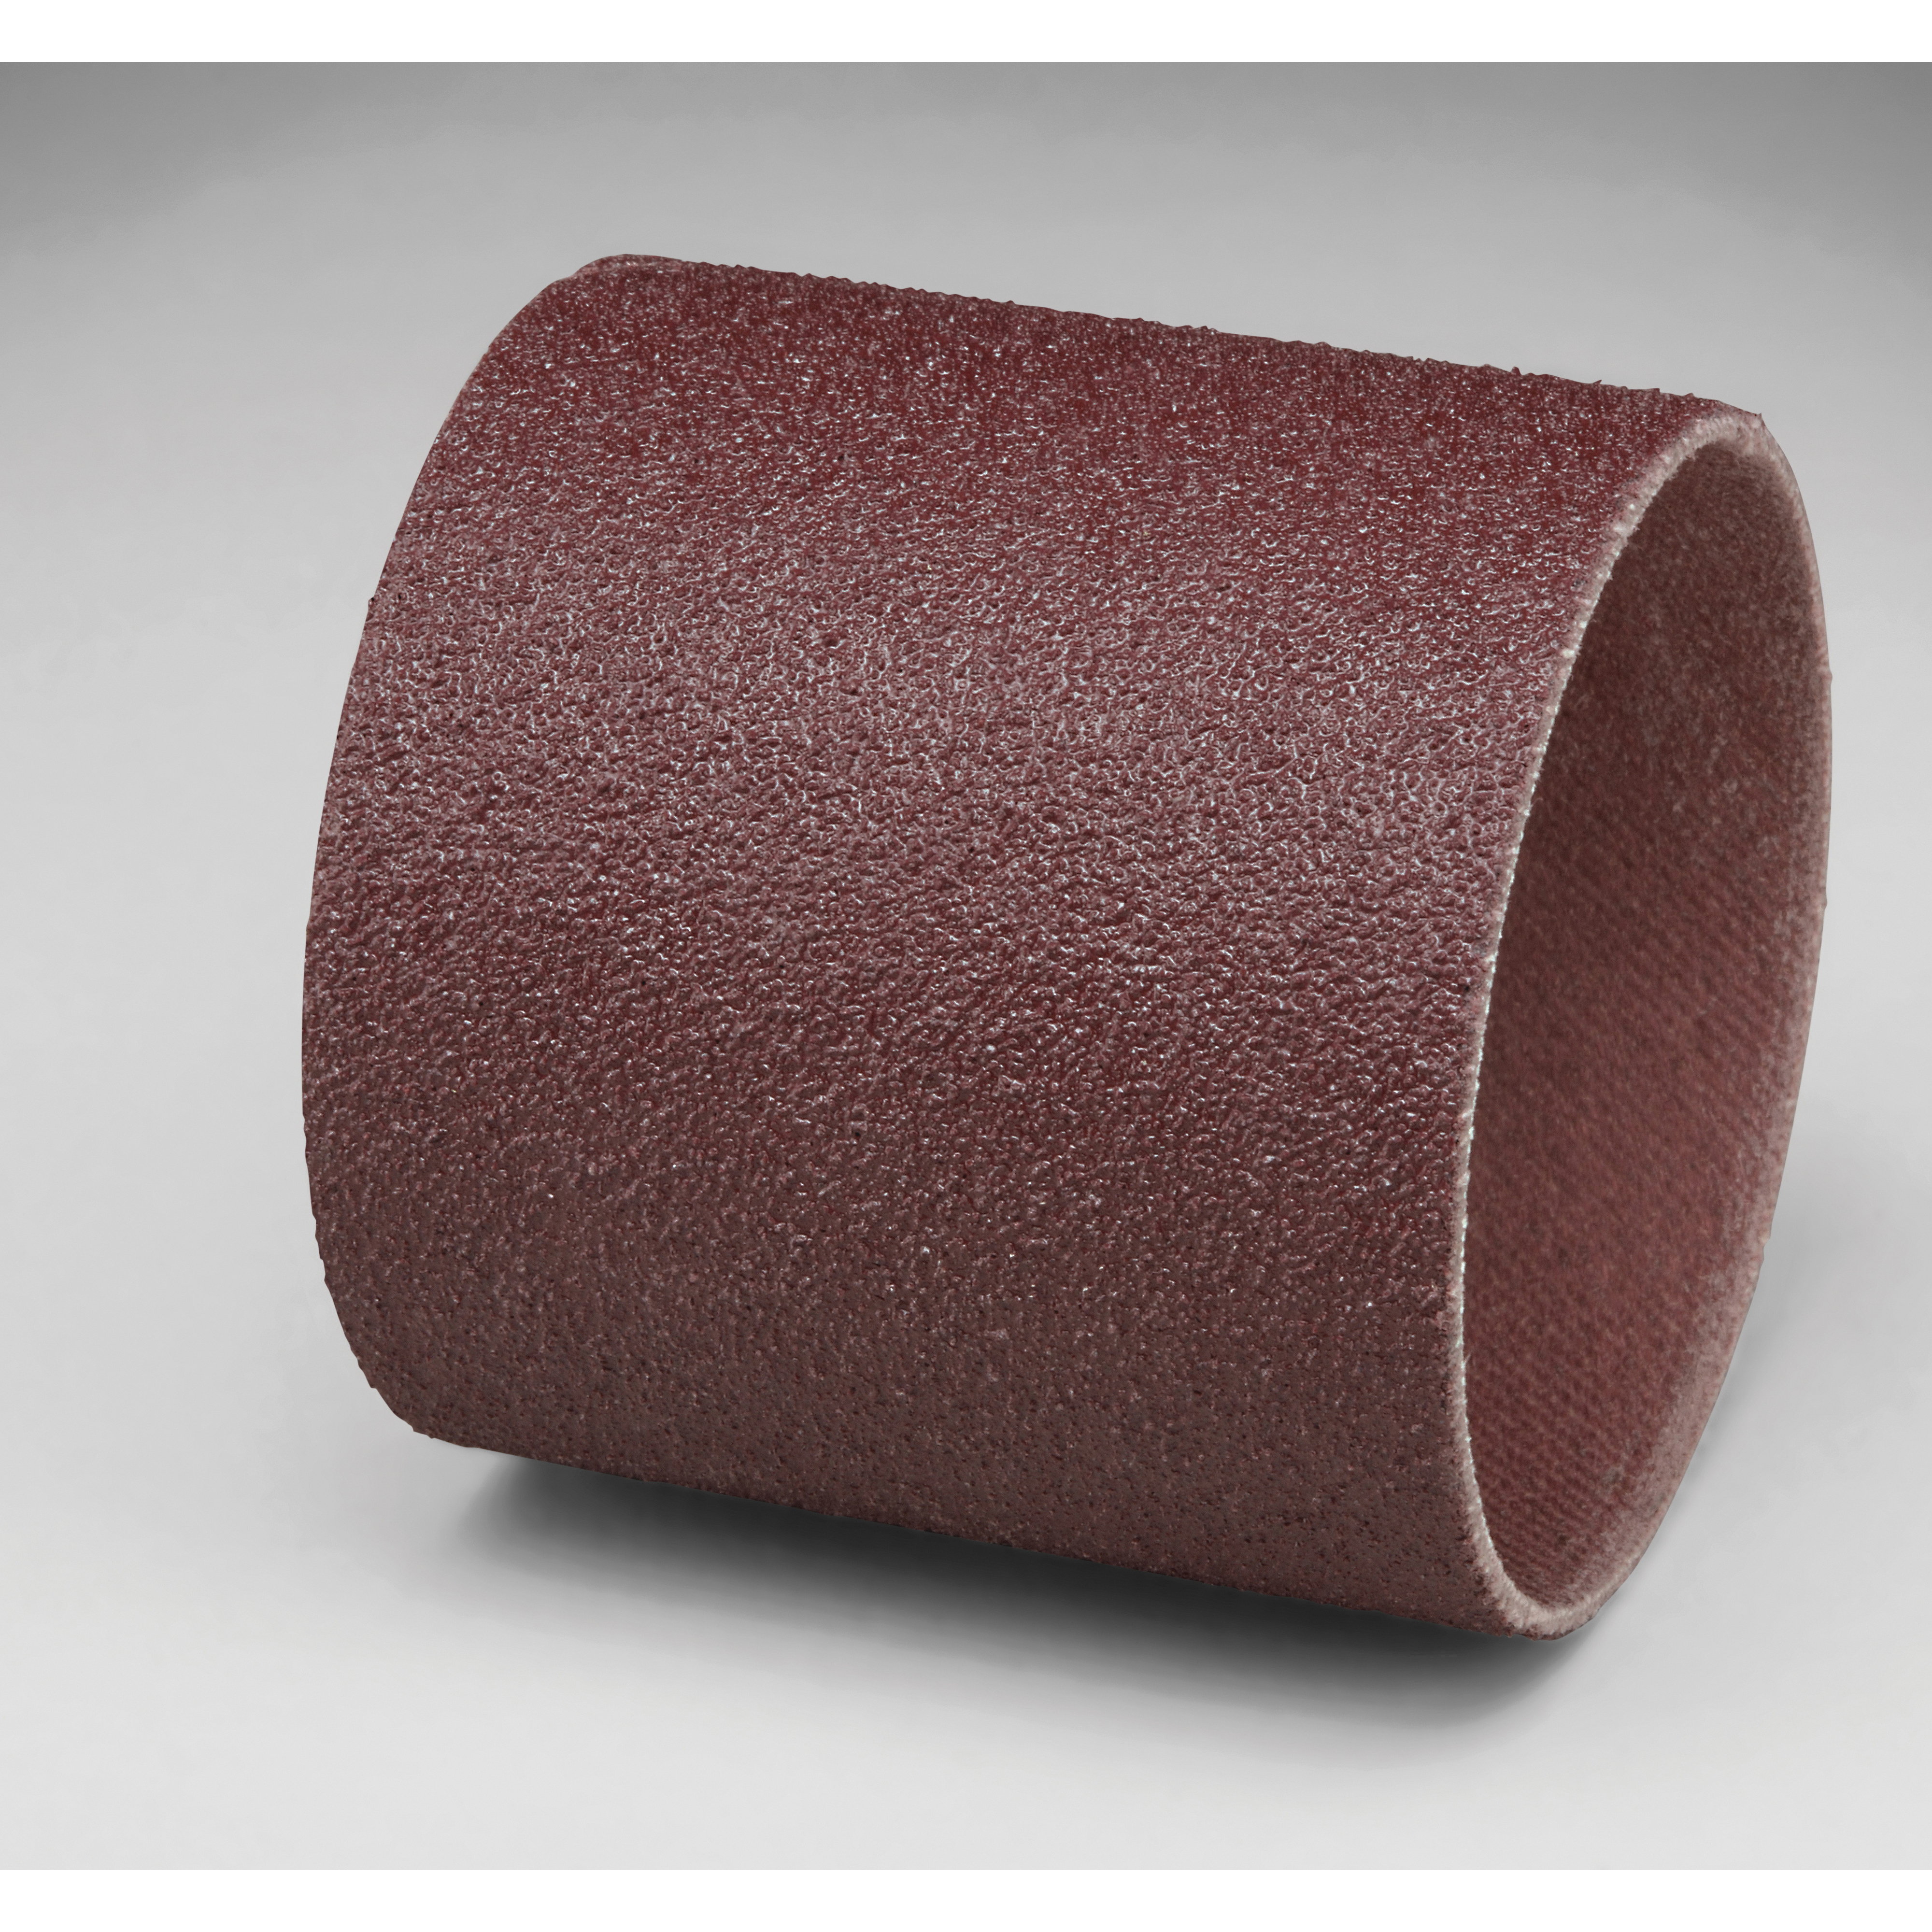 3M™ 051144-40185 341D Coated Spiral Band, 2 in Dia x 2 in L Band, 50 Grit, Coarse Grade, Aluminum Oxide Abrasive